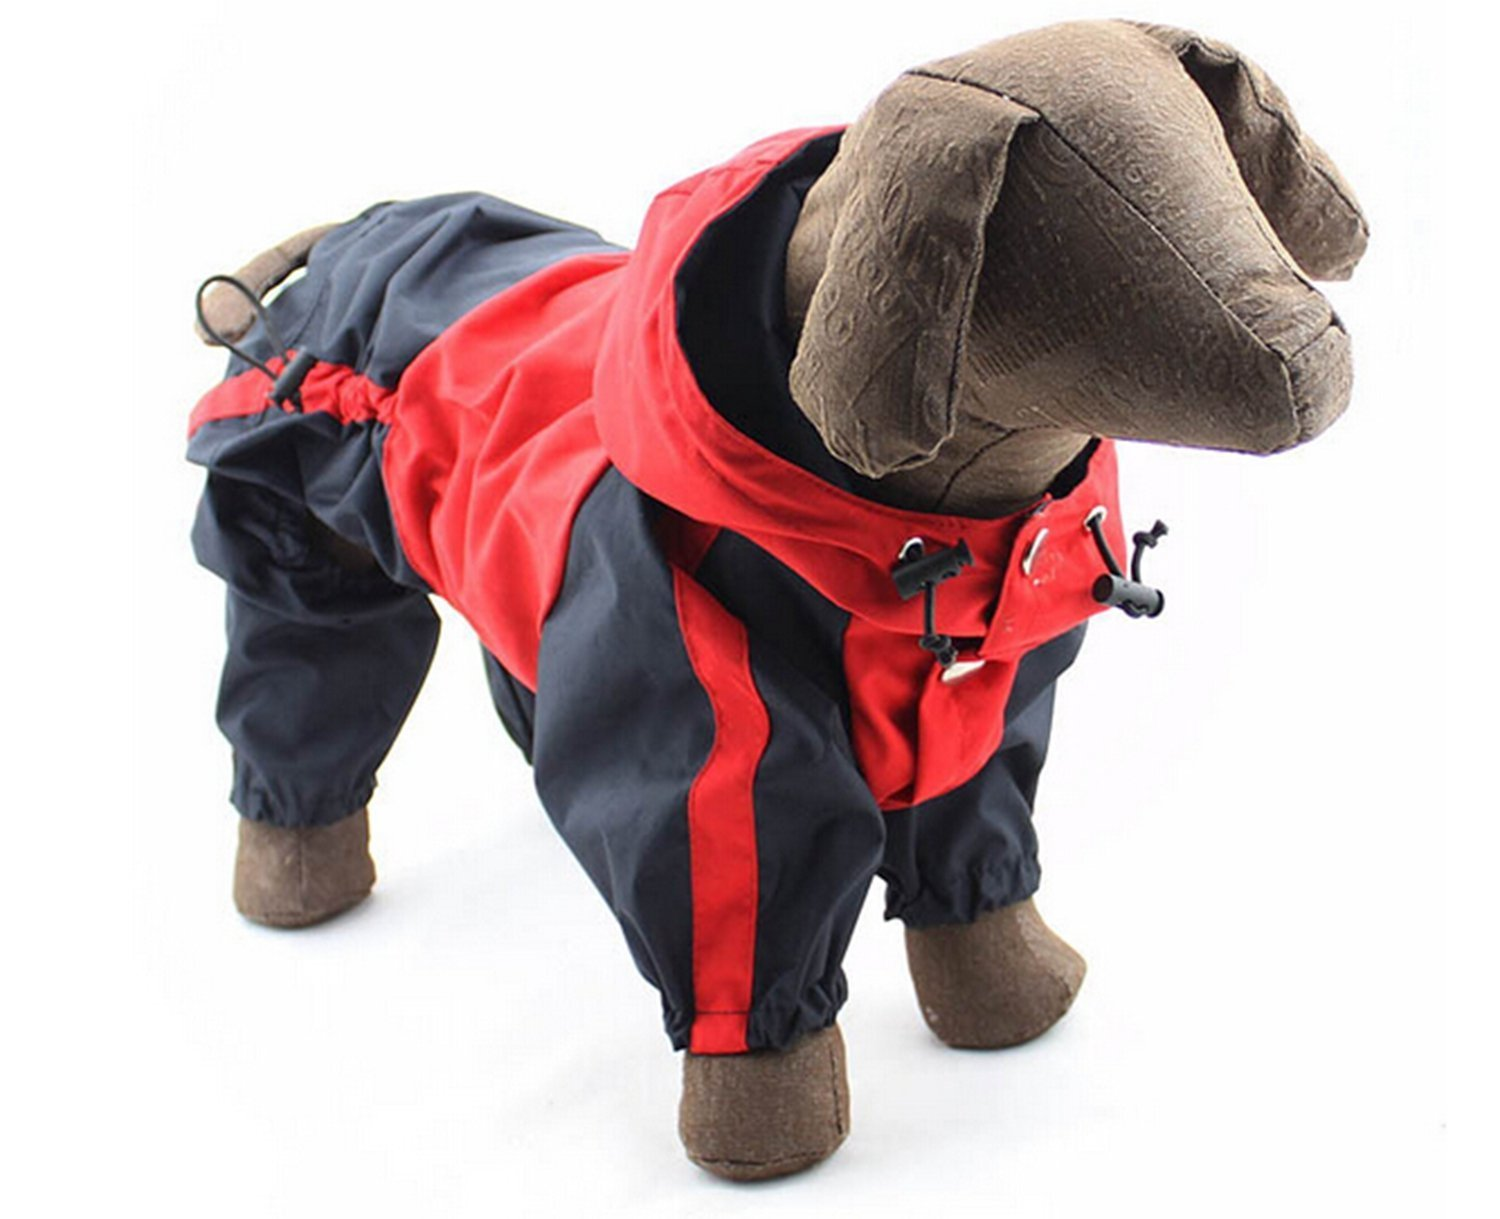 Red and Black 4XL Red and Black 4XL AUCH 1Pcs Four-Legged Hooded Dog Rain Jacket Jumpsuit Rain Poncho Coat Slicker for Medium to Large Dogs, Red